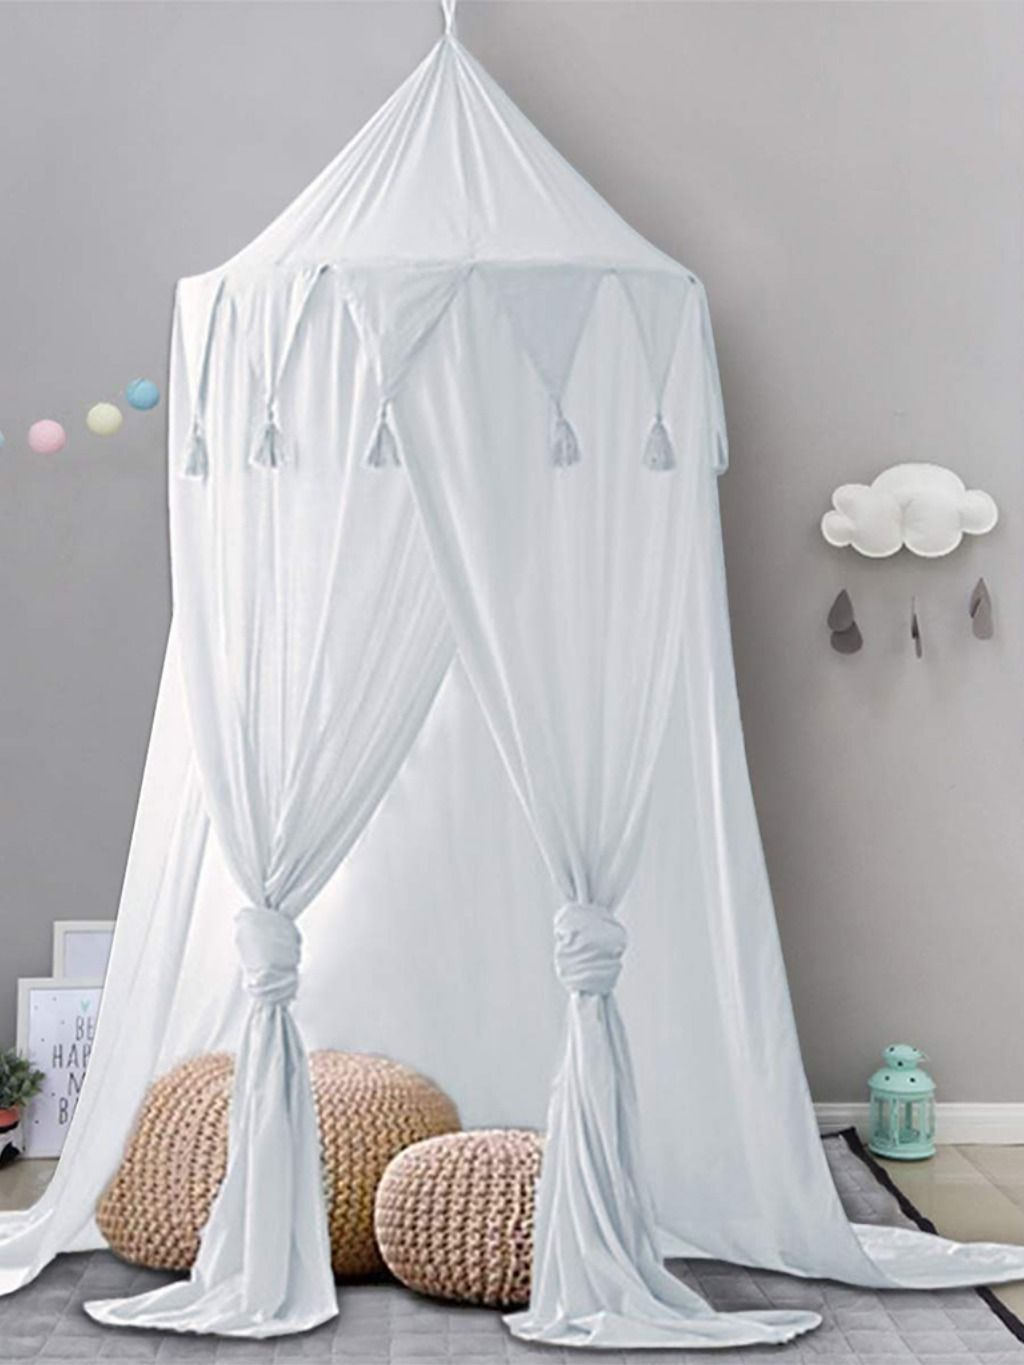 chiffon bed canopy on bed canopy lace mosquito net for kids white bed tent rainbow bedding princess canopy bed pinterest